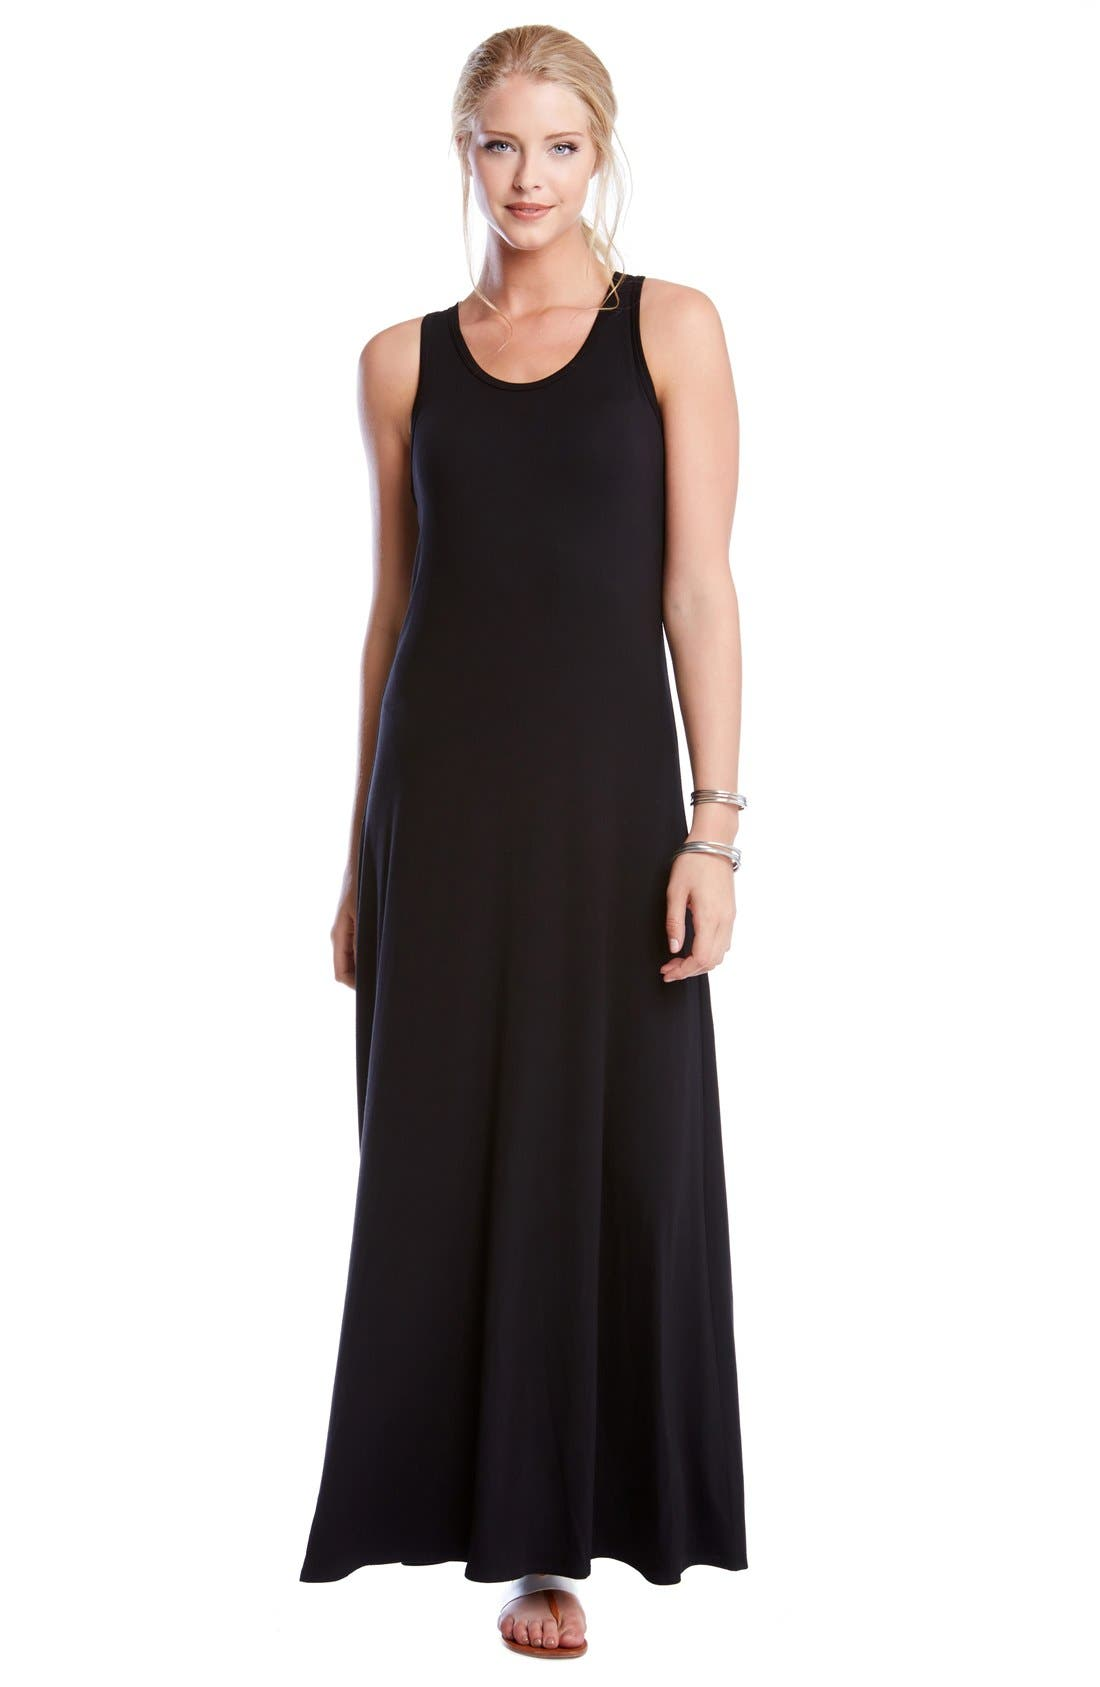 'Tasha' Racerback Jersey Maxi Dress,                             Alternate thumbnail 2, color,                             Black